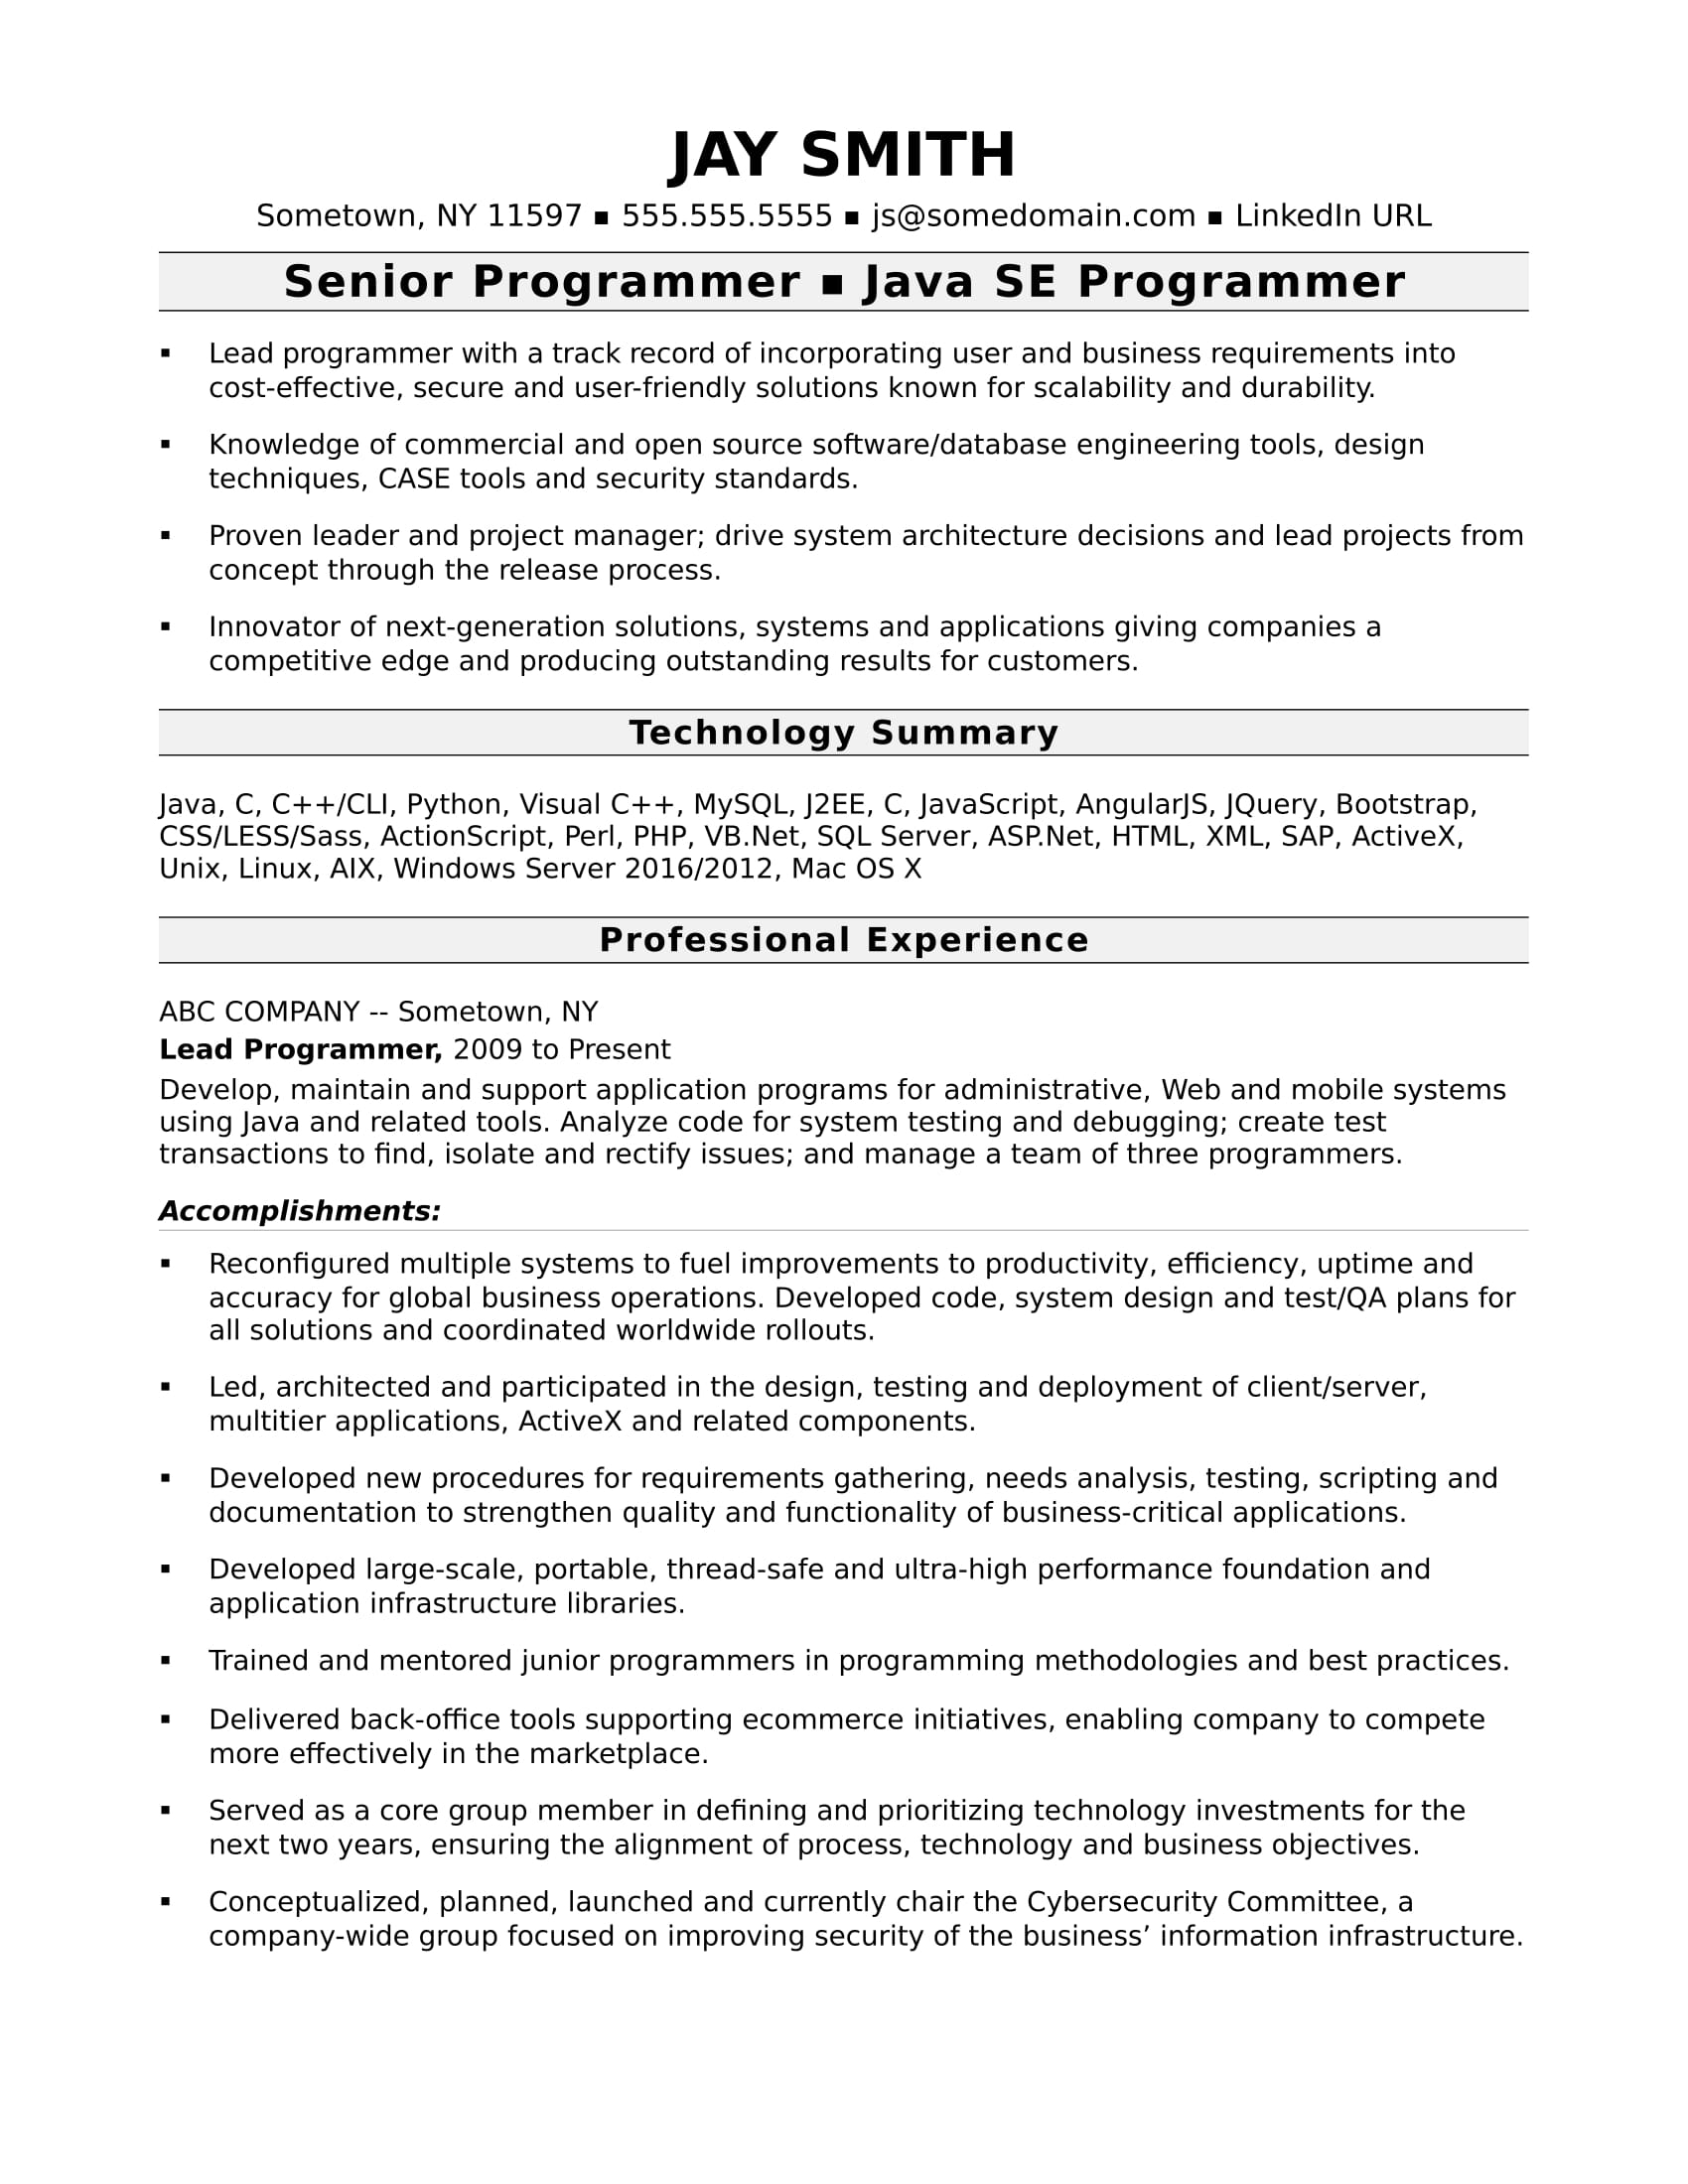 Sample Resume For An Experienced Computer Programmer. it security technician professional. systems infrastructure manager resume example. cto sample resume philip marlowe. it resume example. resume example for internship template